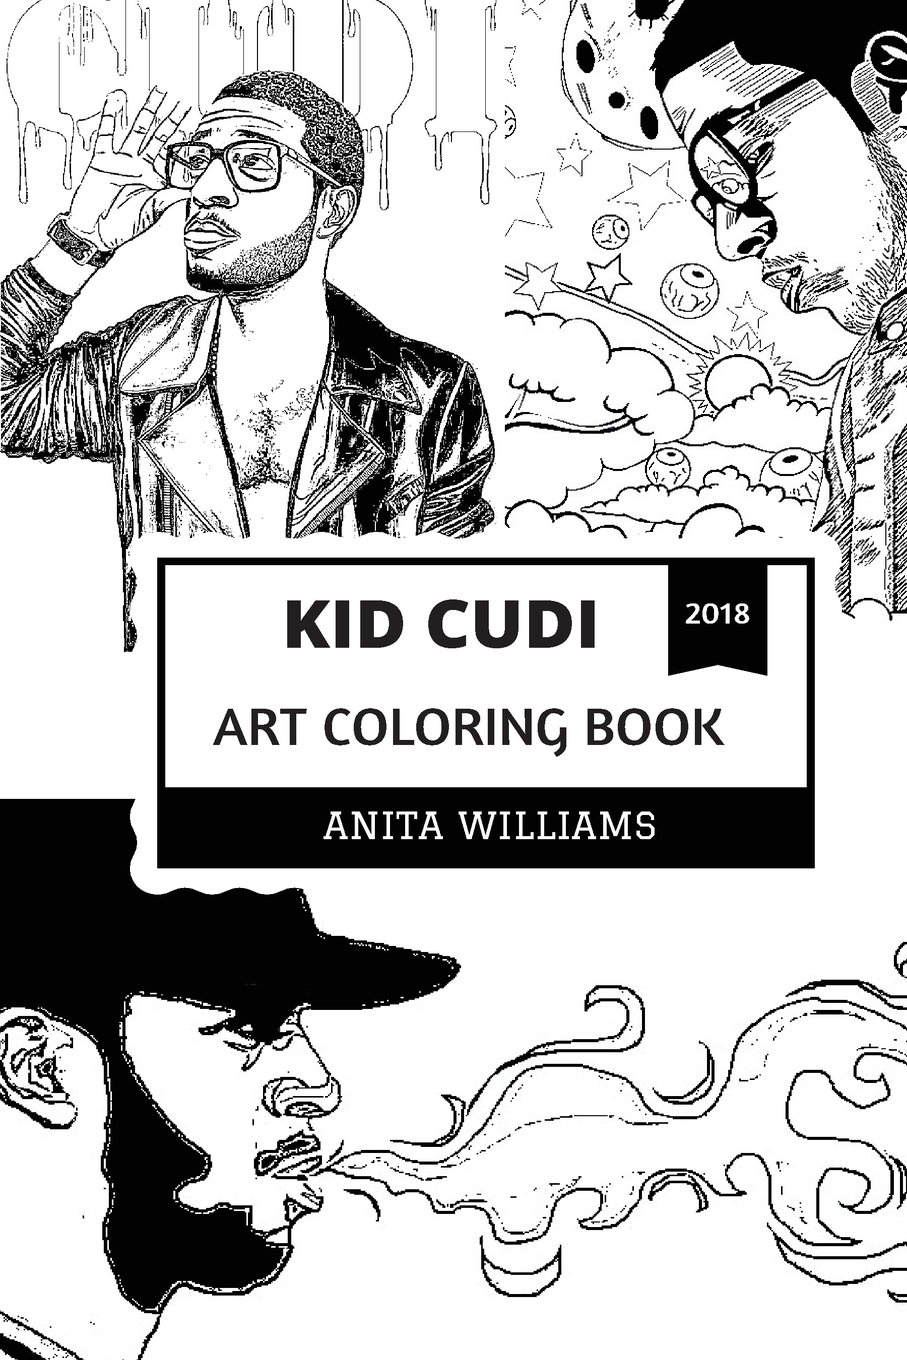 Kid Cudi Art Coloring Book Alternative Hip Hop And New Rock Prodigy